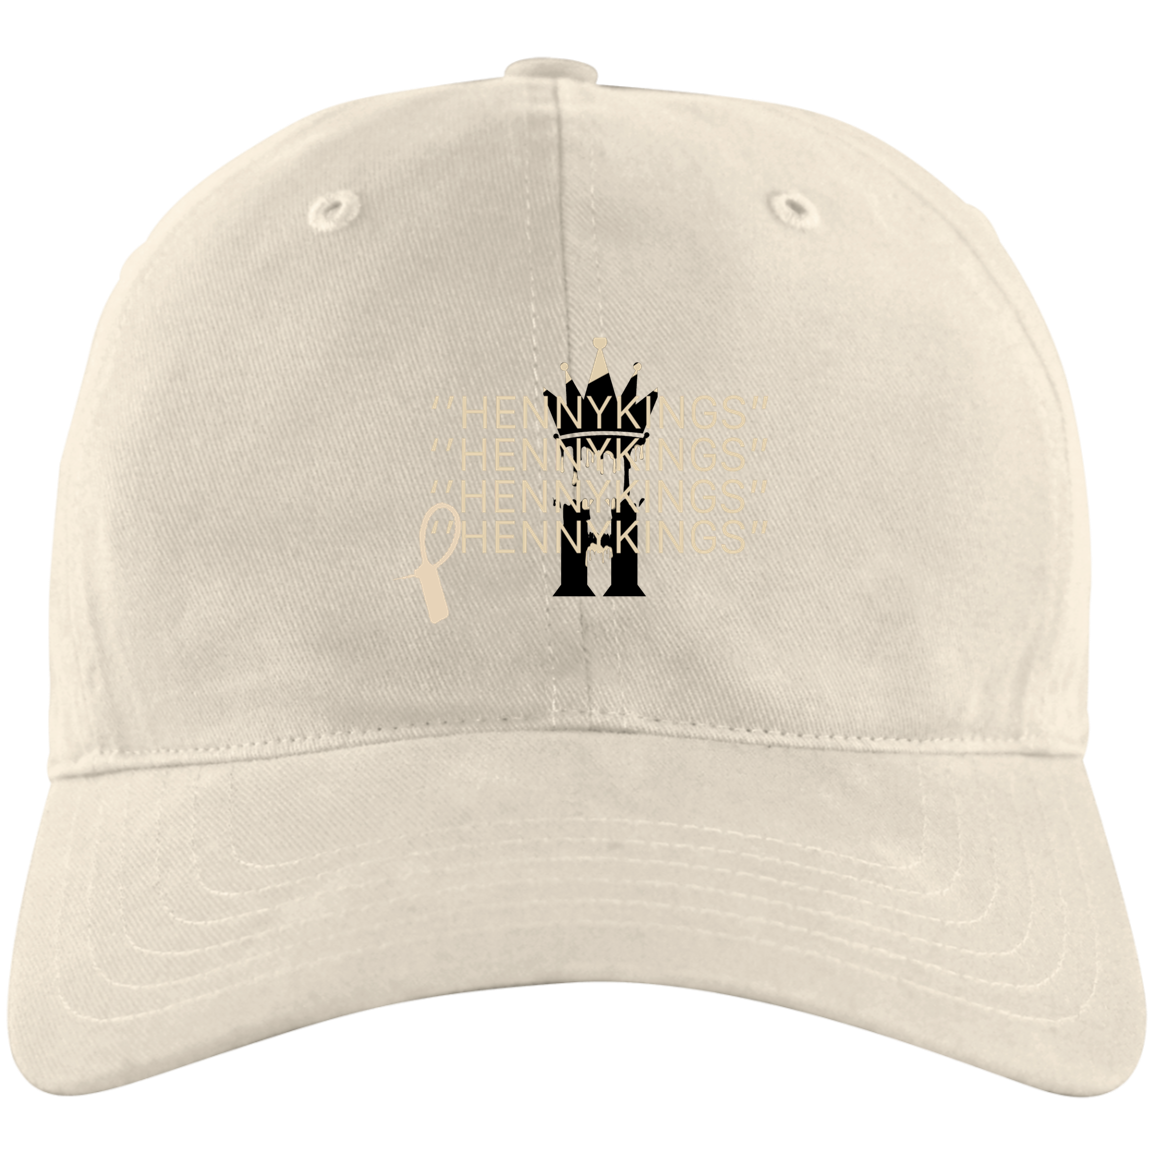 Henny Kings Off White Cap - Henny Kings